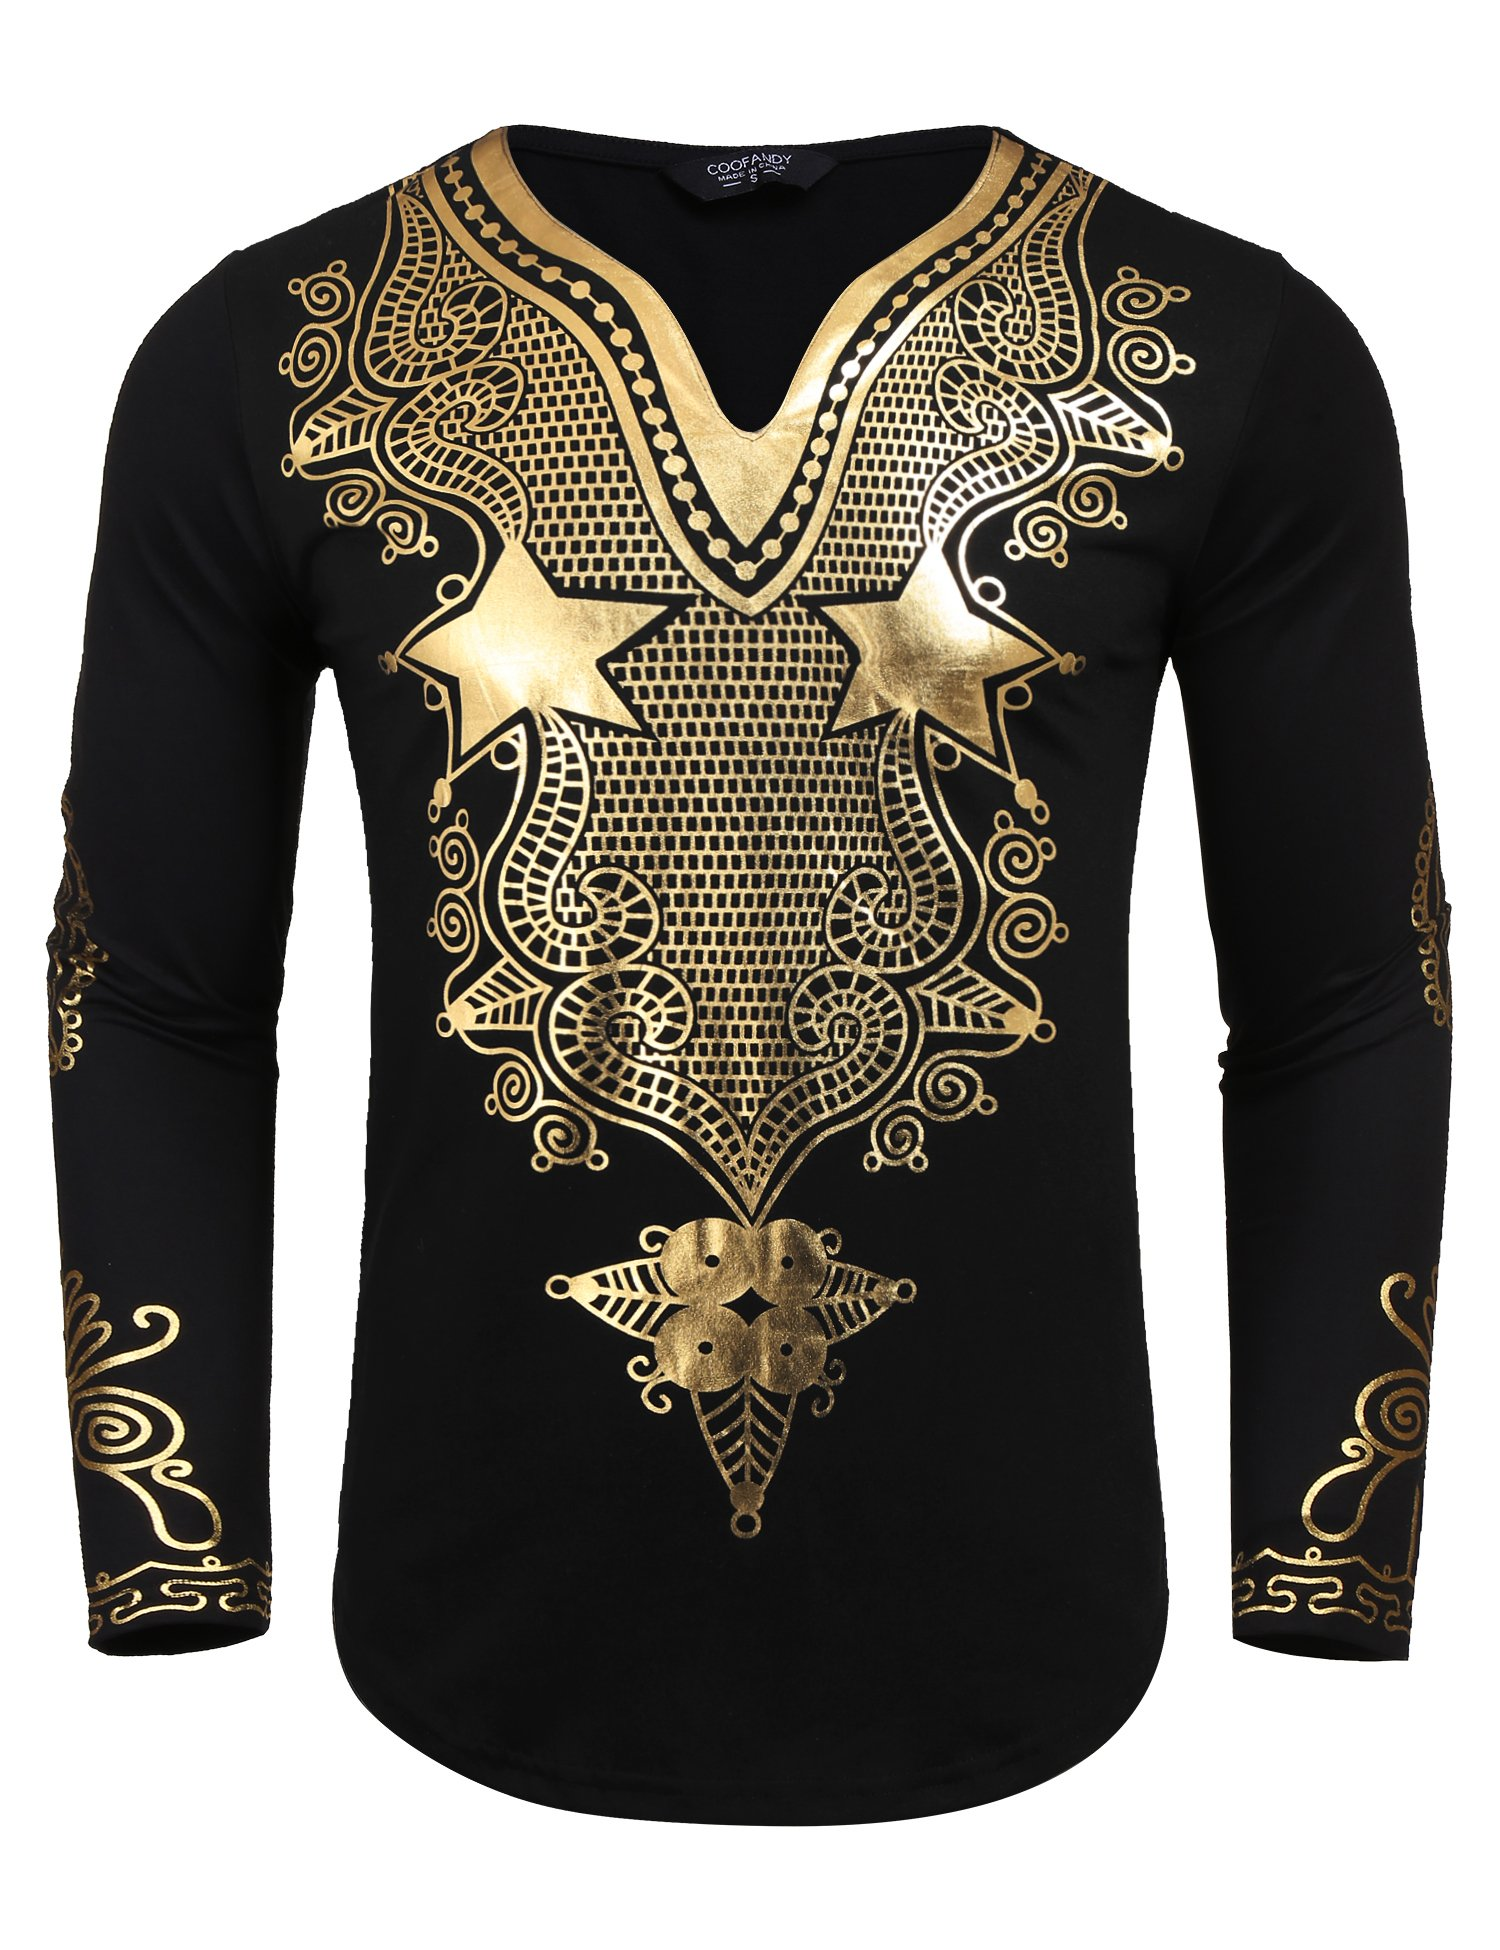 JINIDU Men's African Dashiki Shirt Metallic Floral Printed Tops Blouse